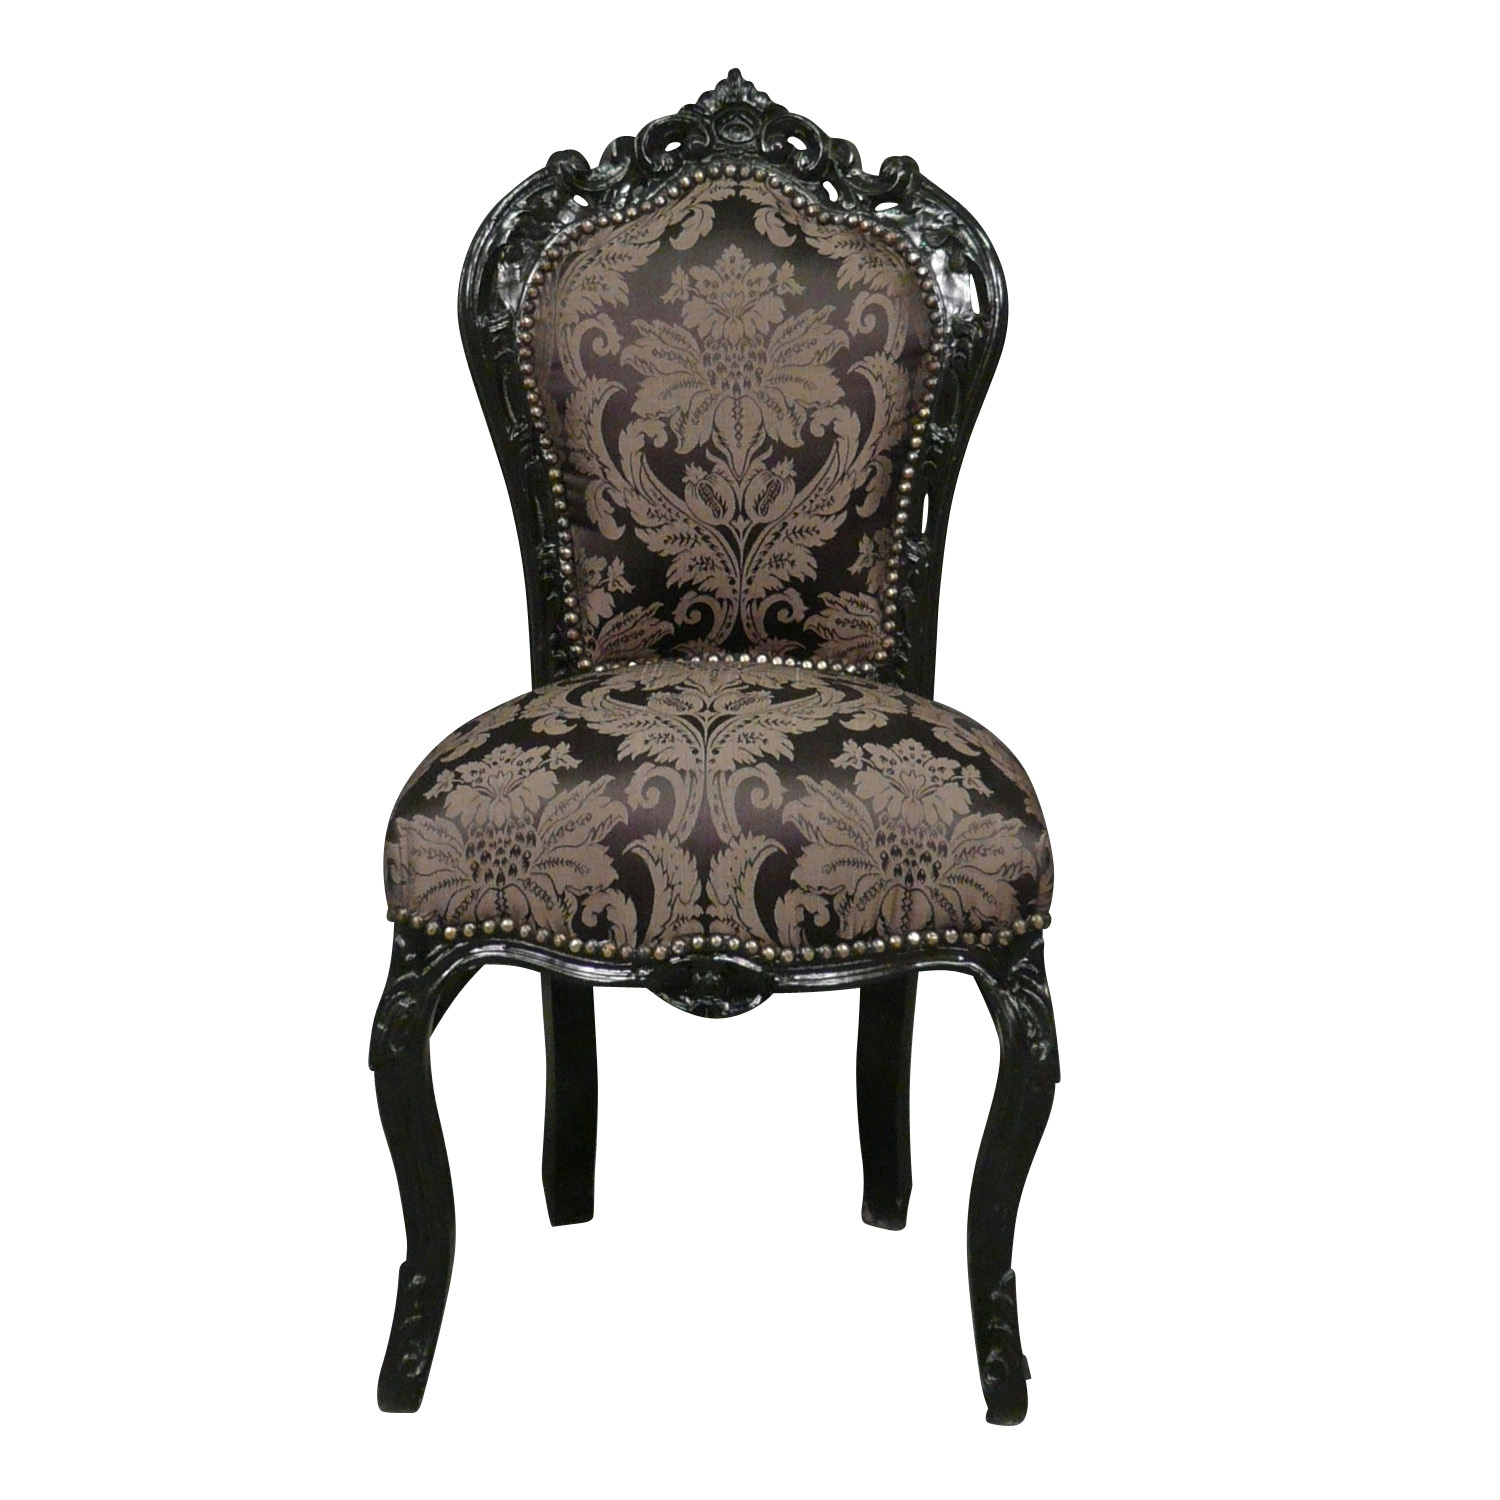 Baroque chair gallery armchair - Chaise baroque argentee ...